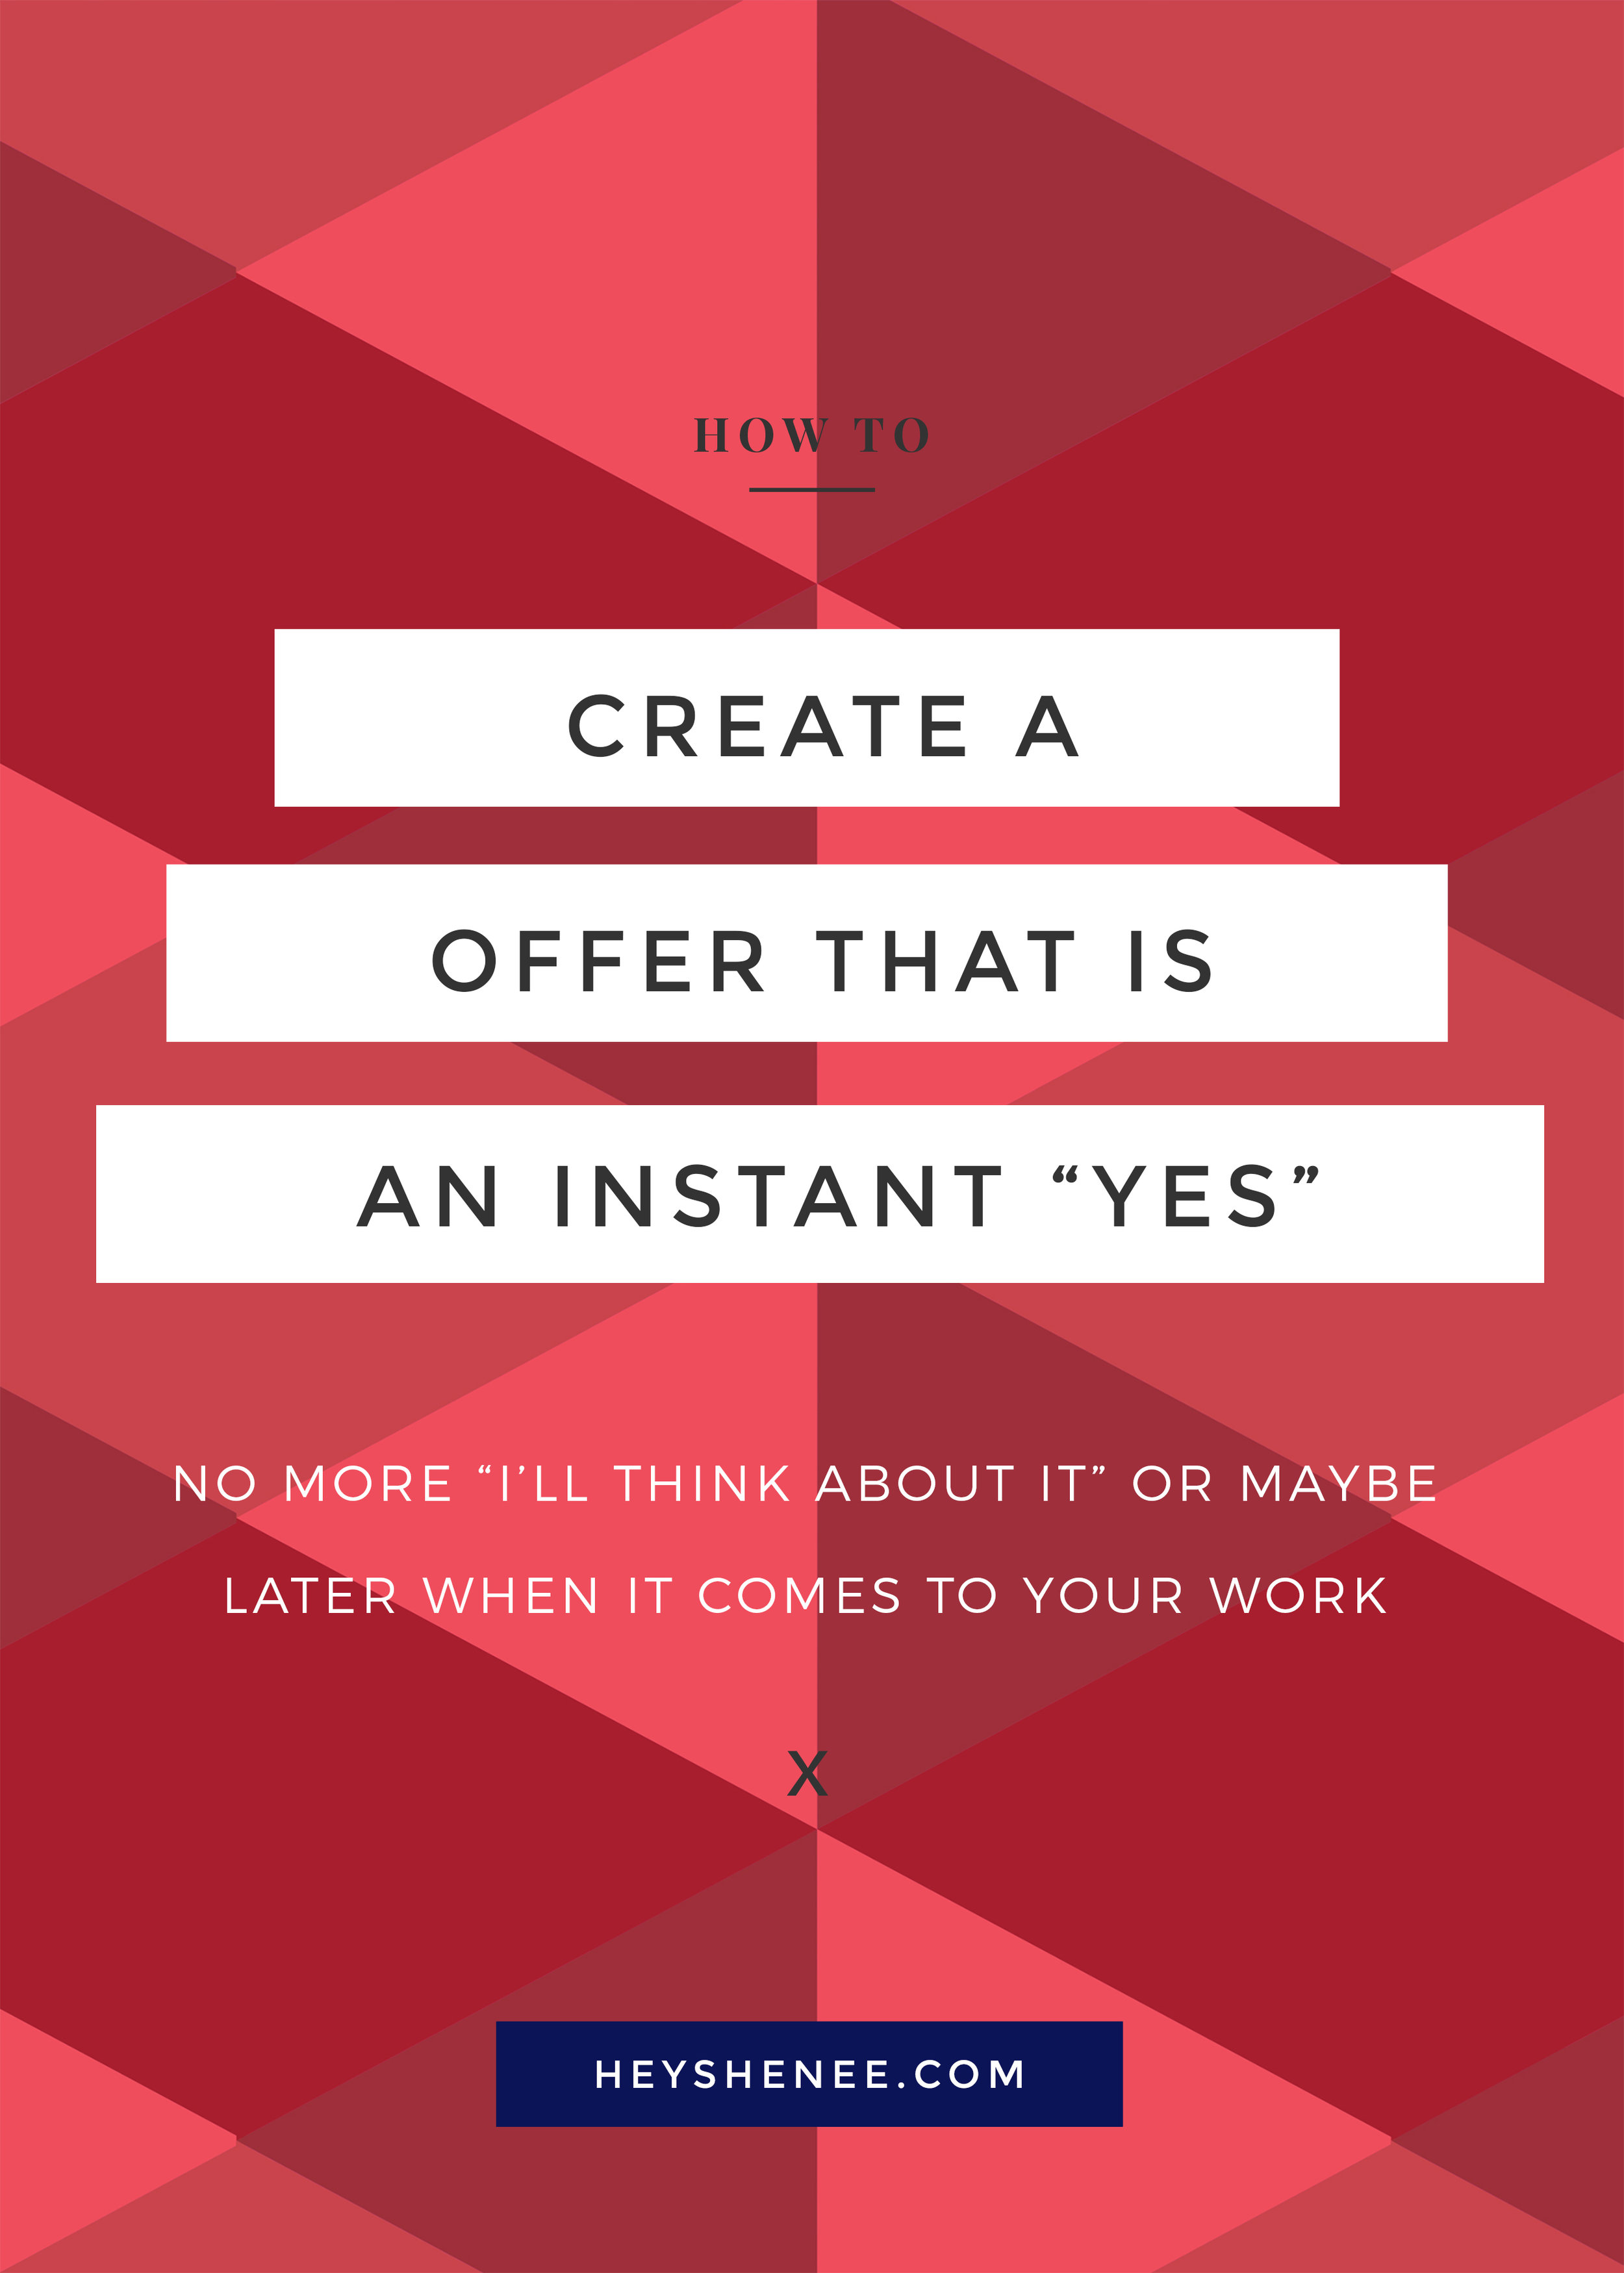 Create a offer that is an instant YES